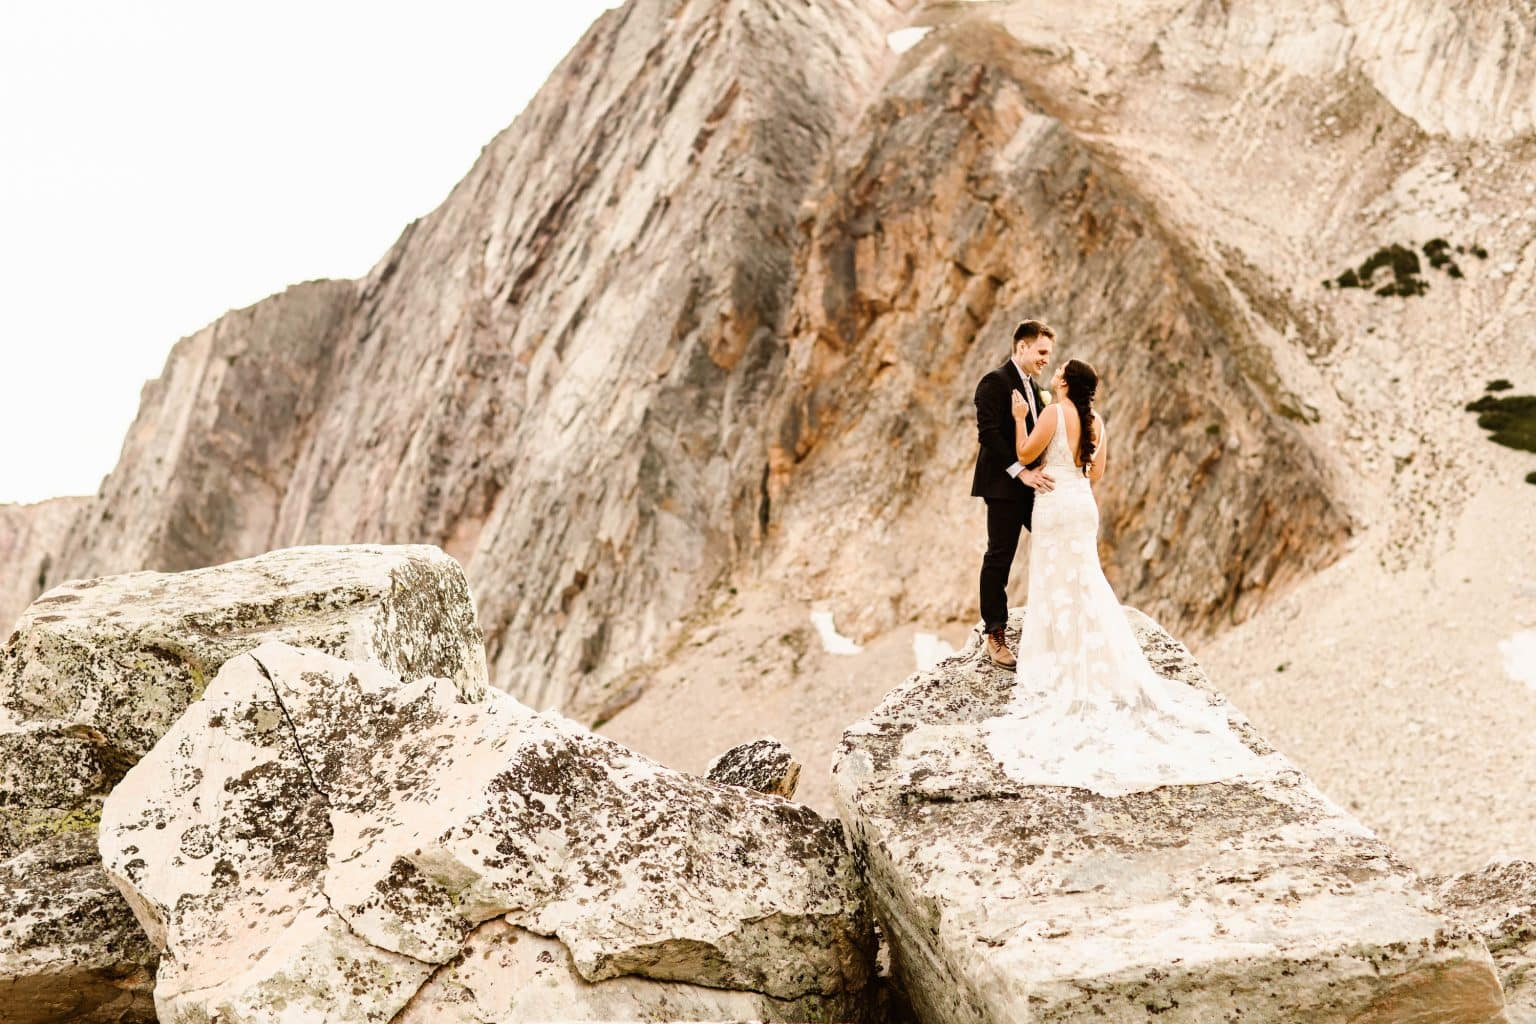 elopement advice | couple standing on a rocky granite mountain on their elopement day